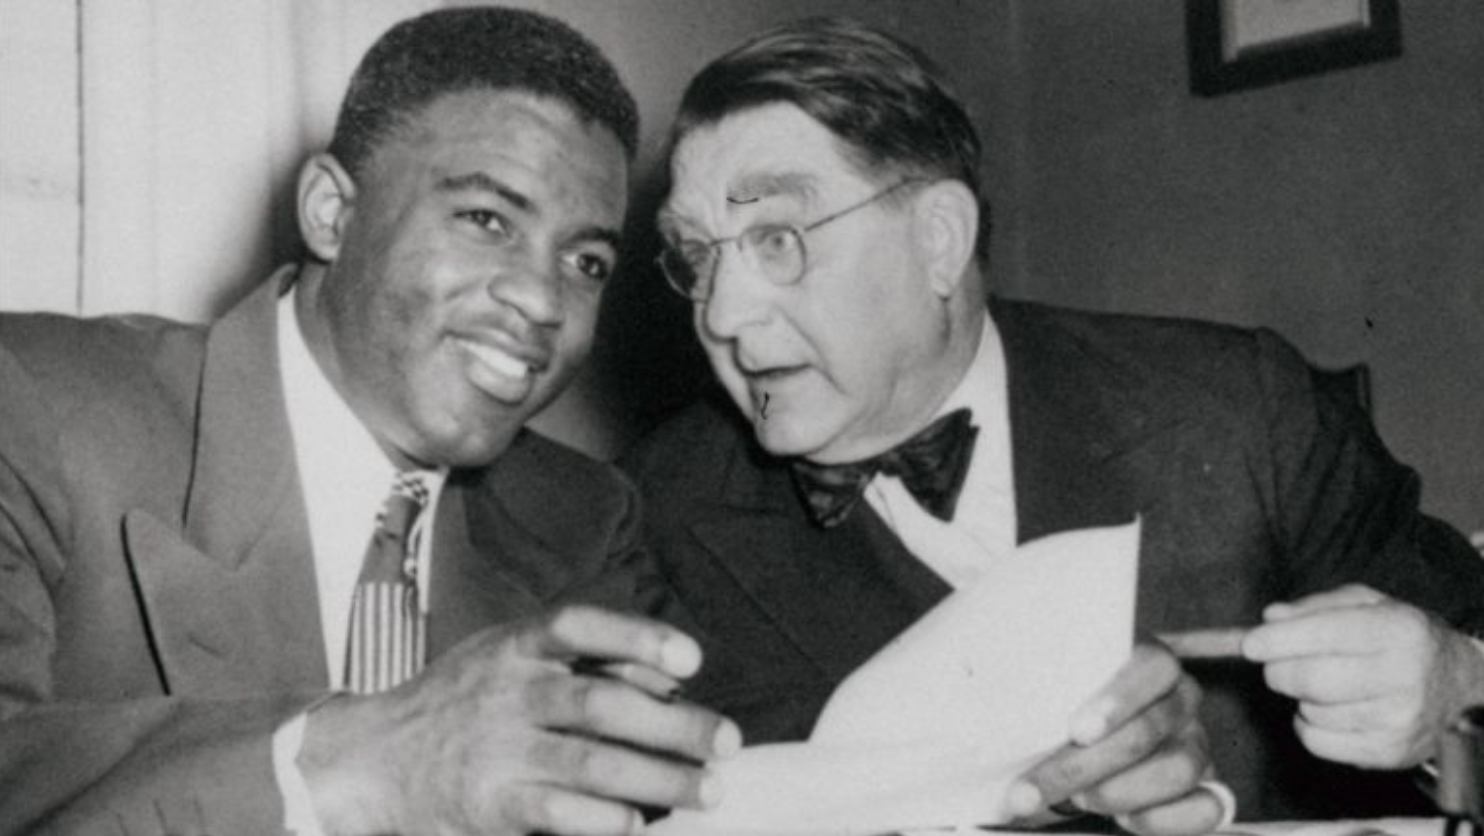 Branch Rickey and Jackie Robinson made history together, breaking the color barrier in Major League Baseball. Both men blazed the trail for other African American's to play in the major leagues.